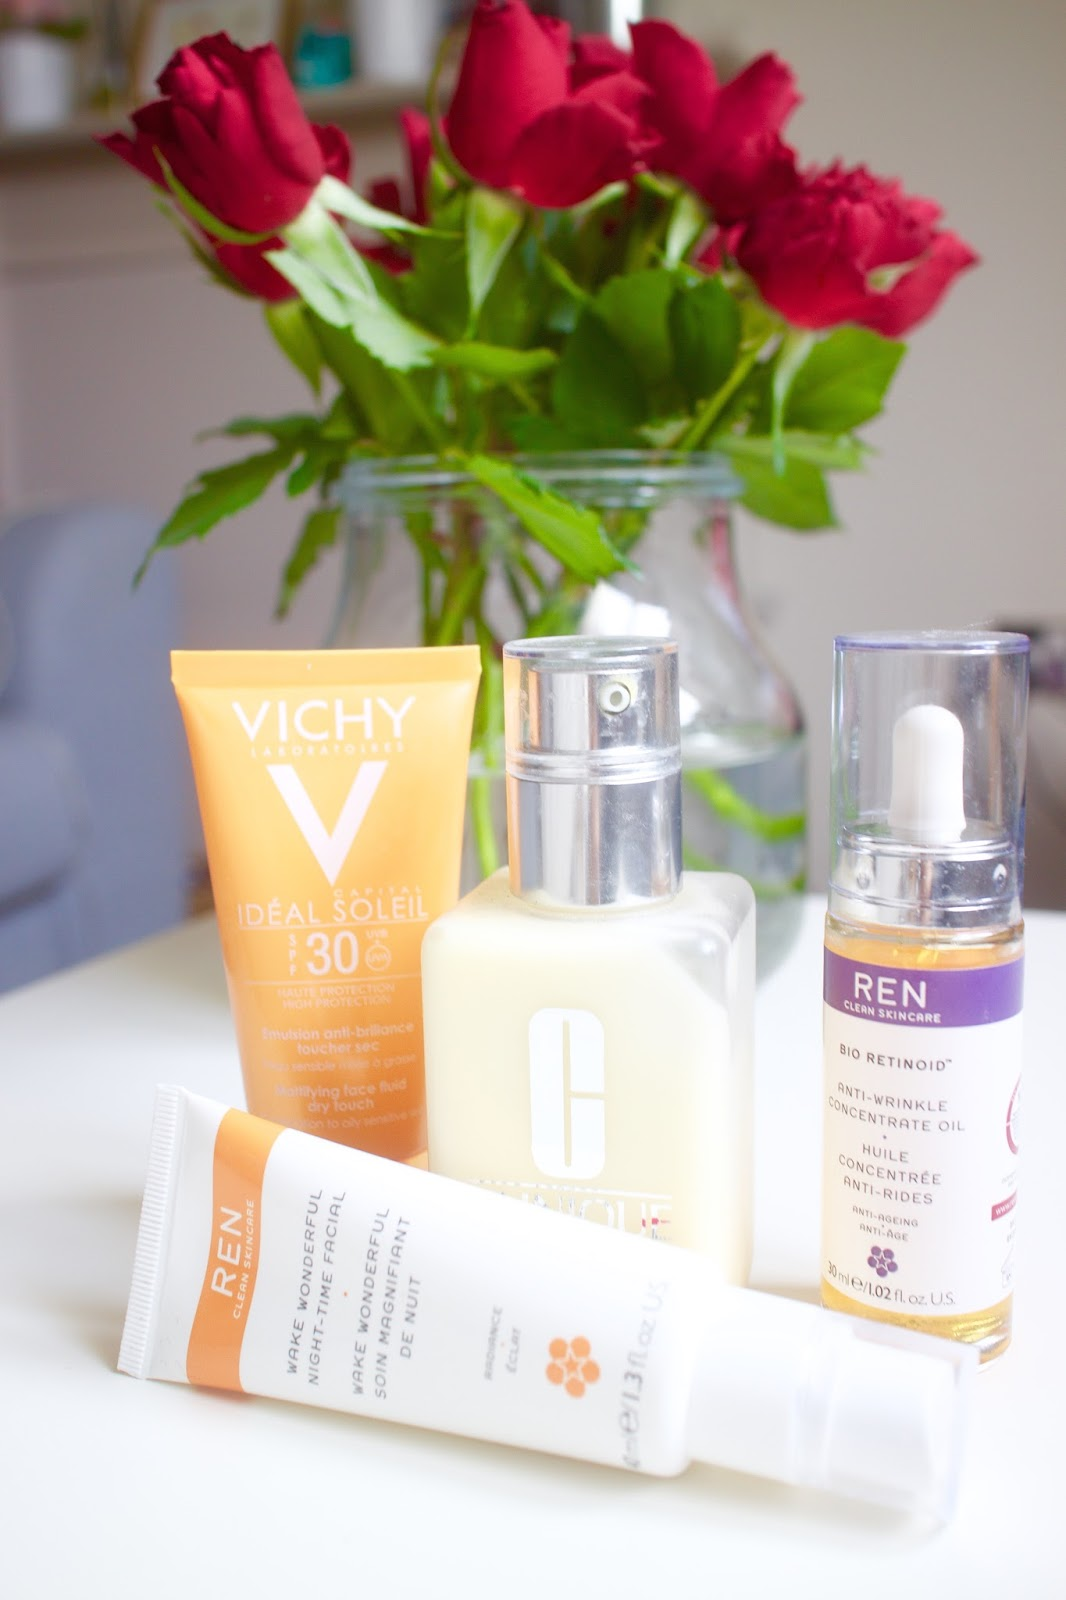 She's So Lucy Skin Diaries Febraury March April Oily Hormonal Acne PCOS Skin Retinol REN Wake Wonderful Vichy Suncream